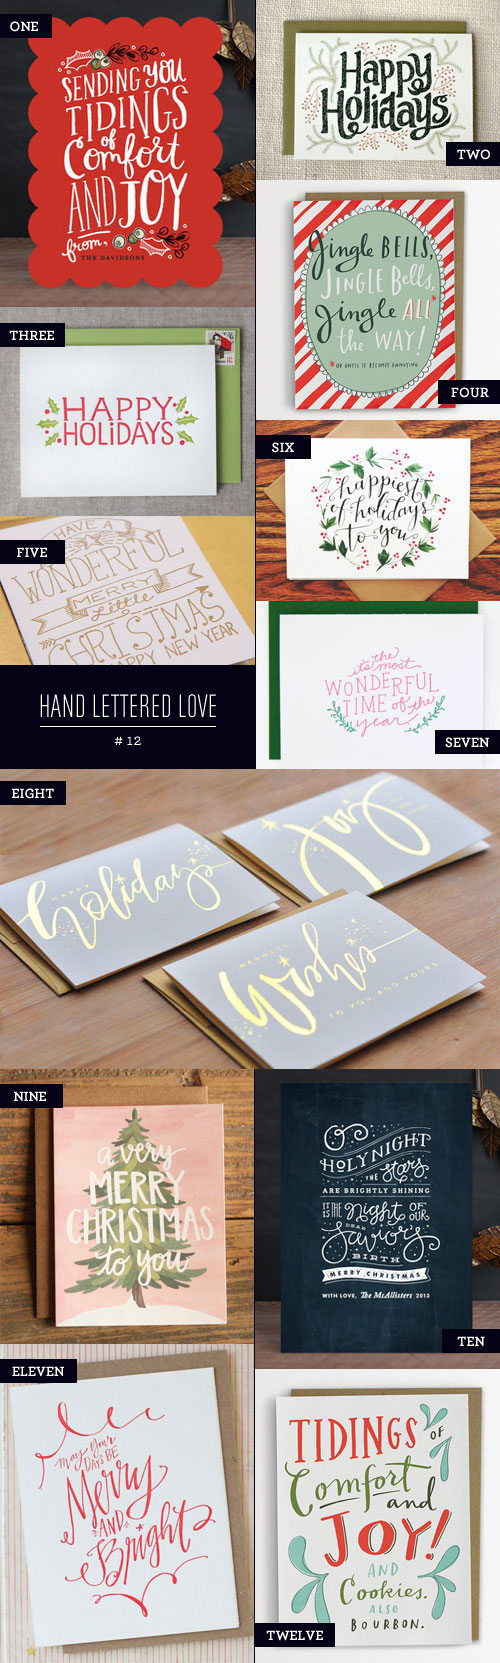 Hand Lettered Love #12, Holiday Card Edition as seen on papercrave.com